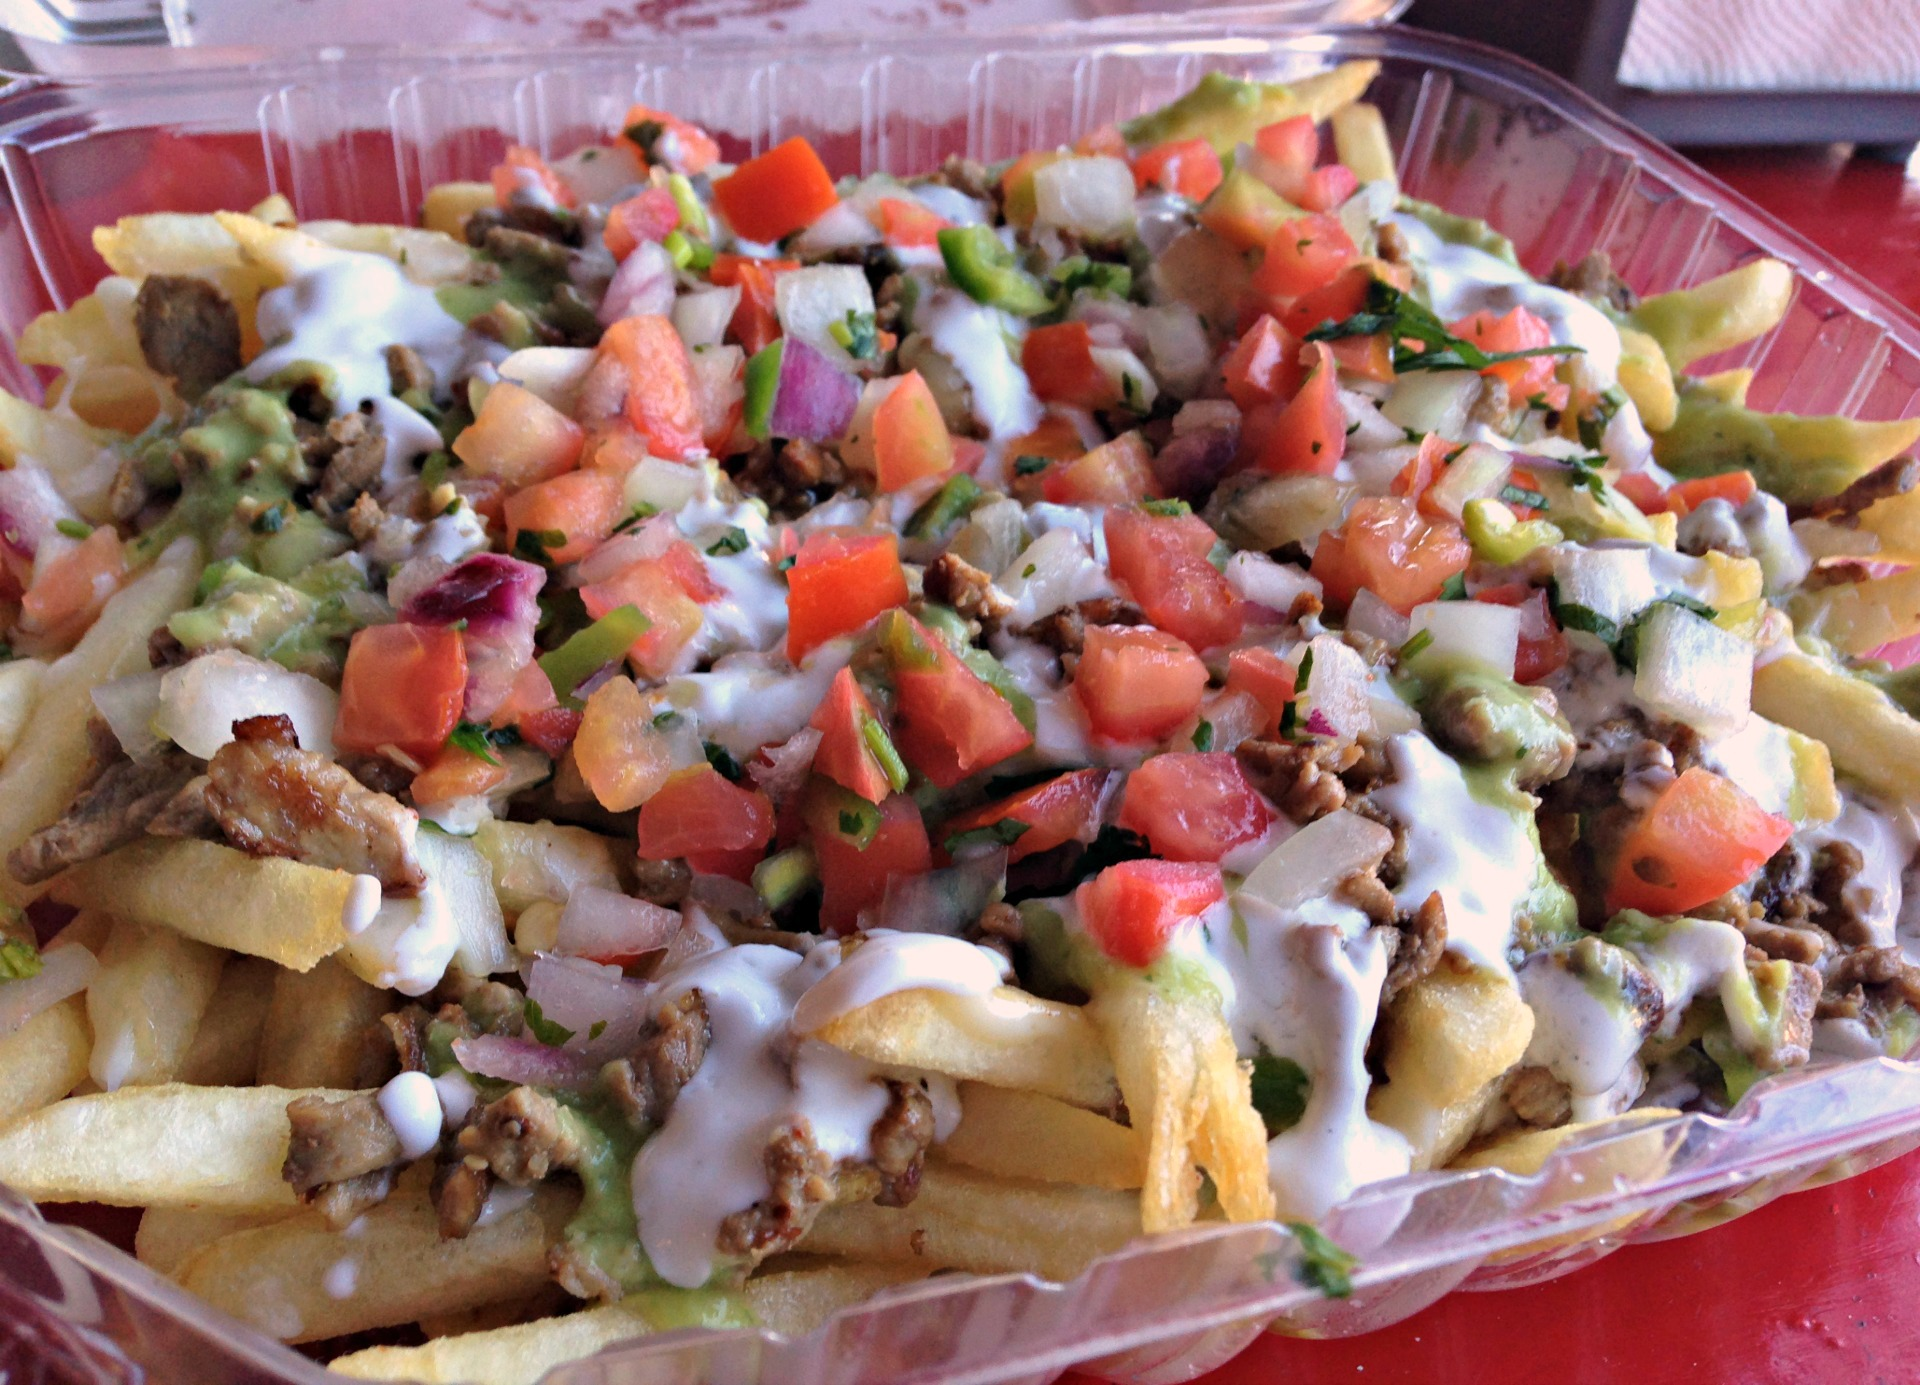 Carne asada fries from Taqueria La Estrella in Richmond.